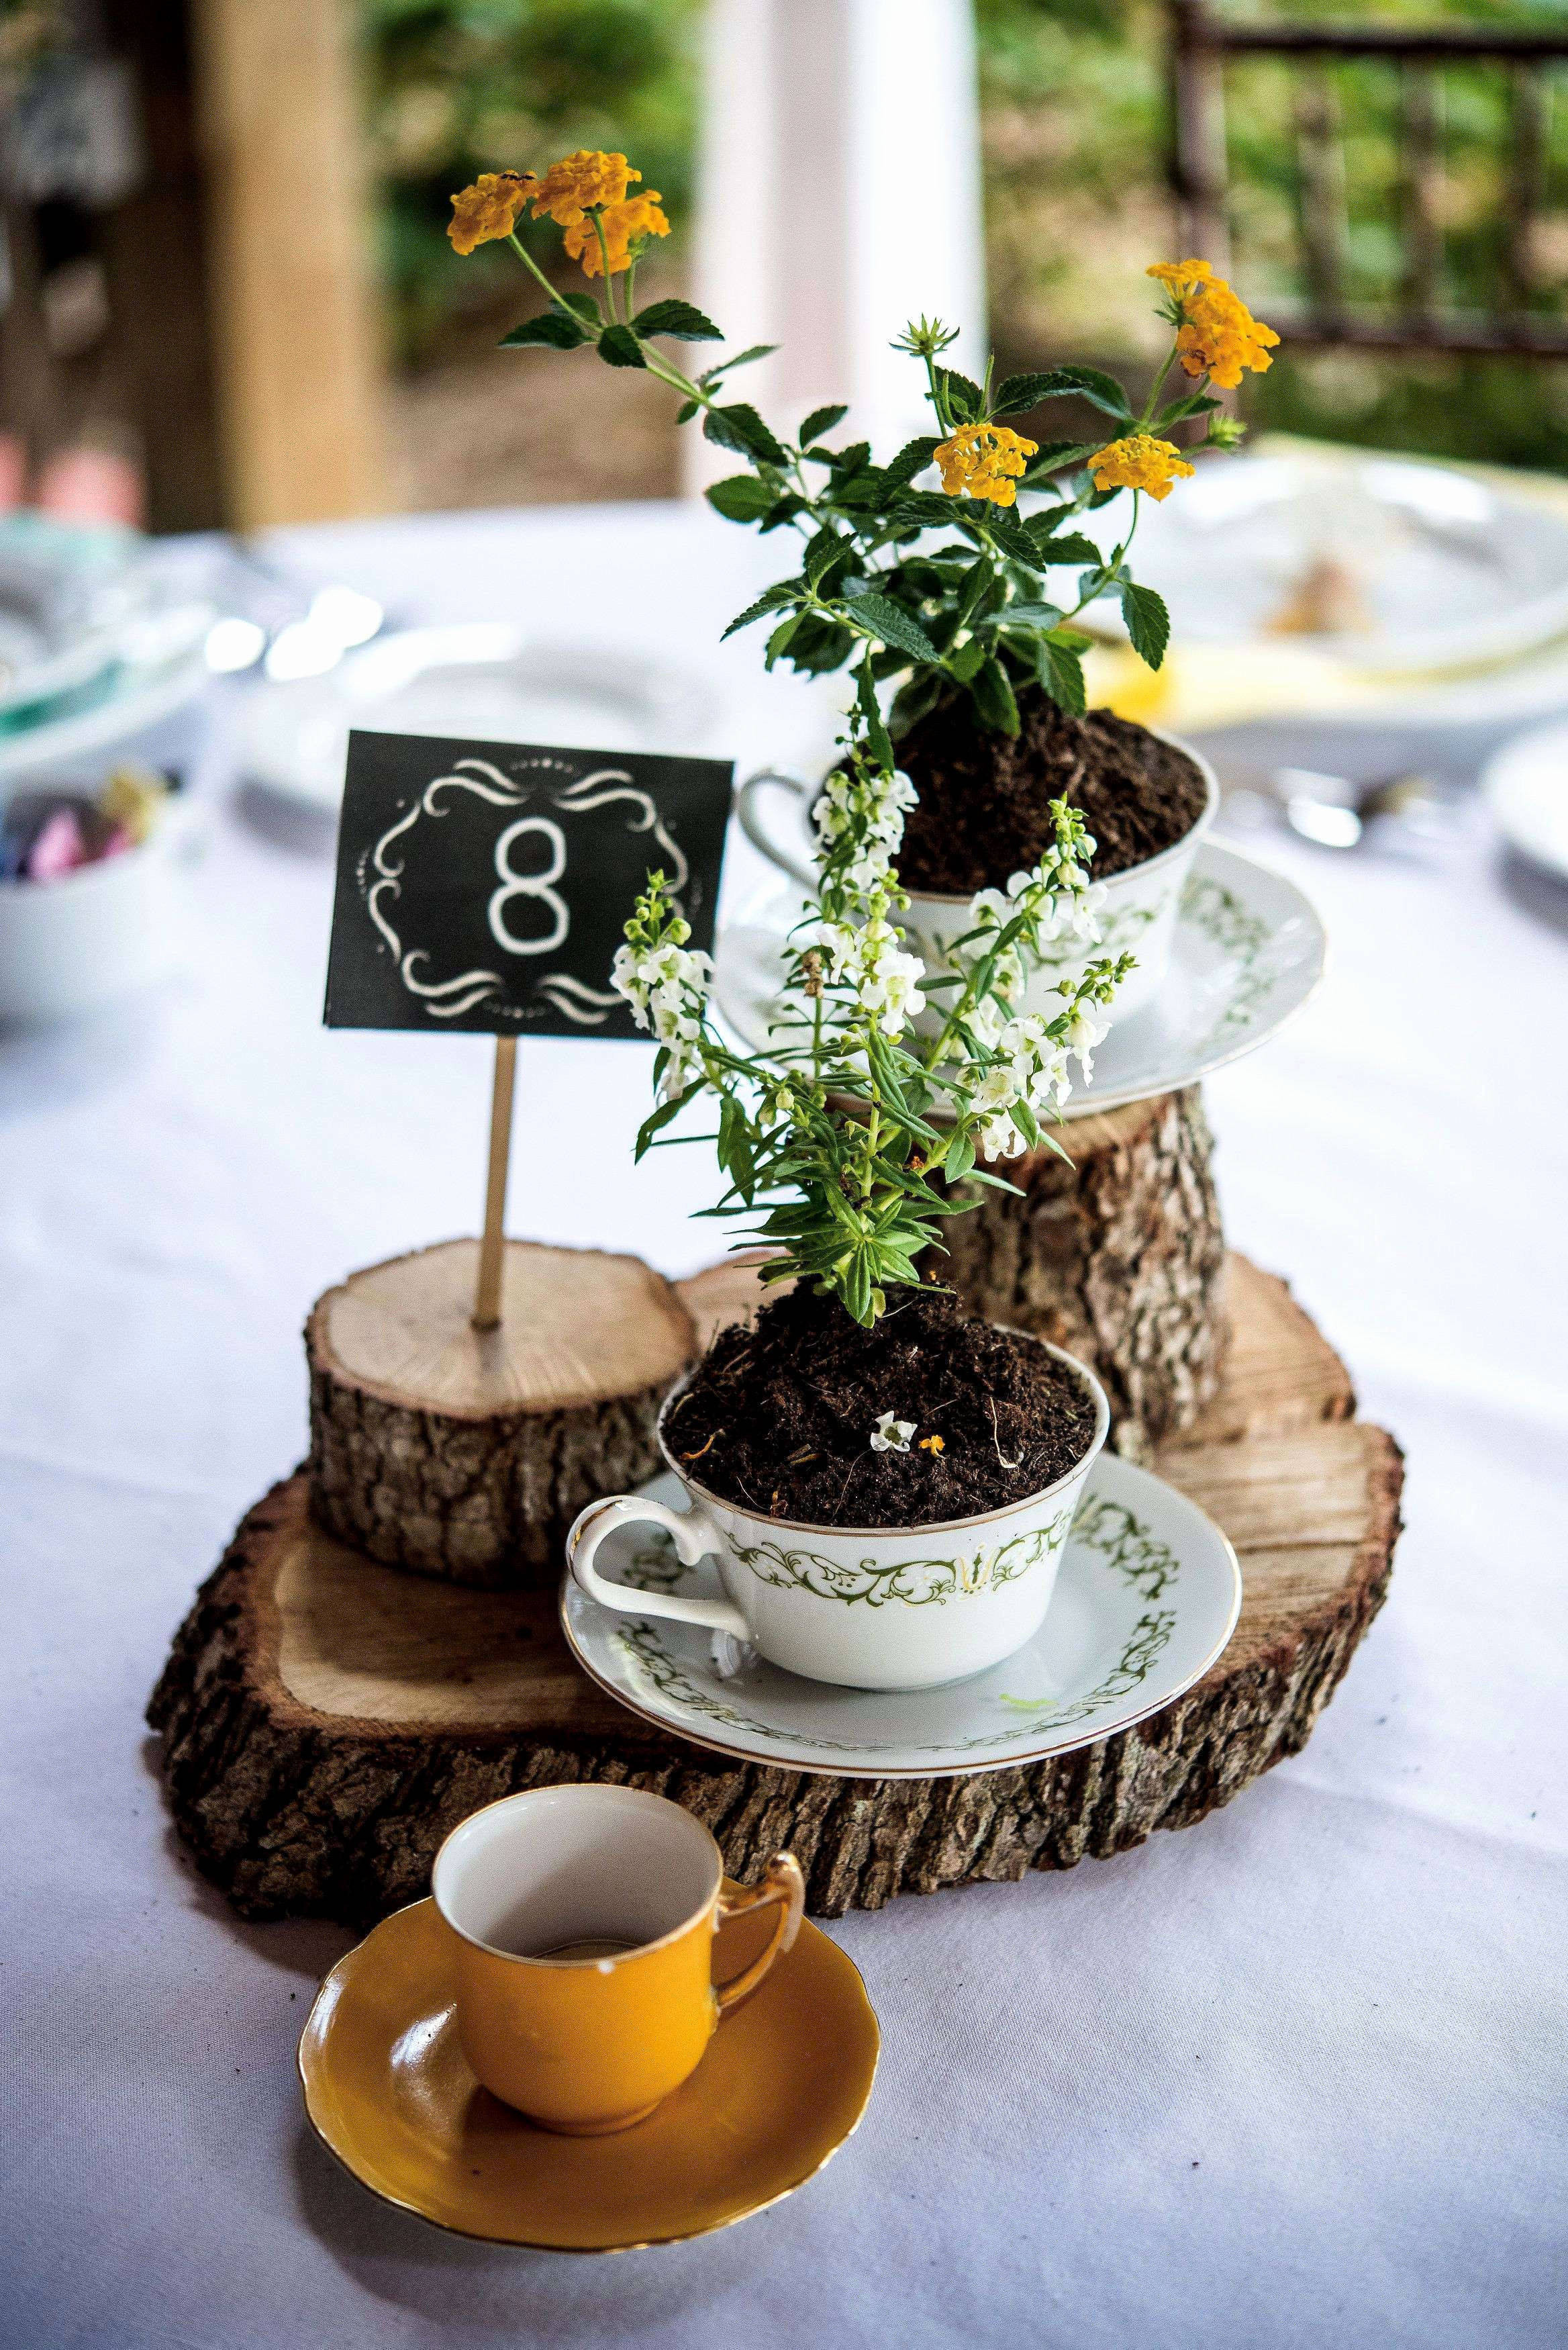 rent vases for wedding centerpiece near me of pictures of impressive tent and chair rental near me fresh wedding with regard to pictures of impressive tent and chair rental near me fresh wedding rental decor handy fashions